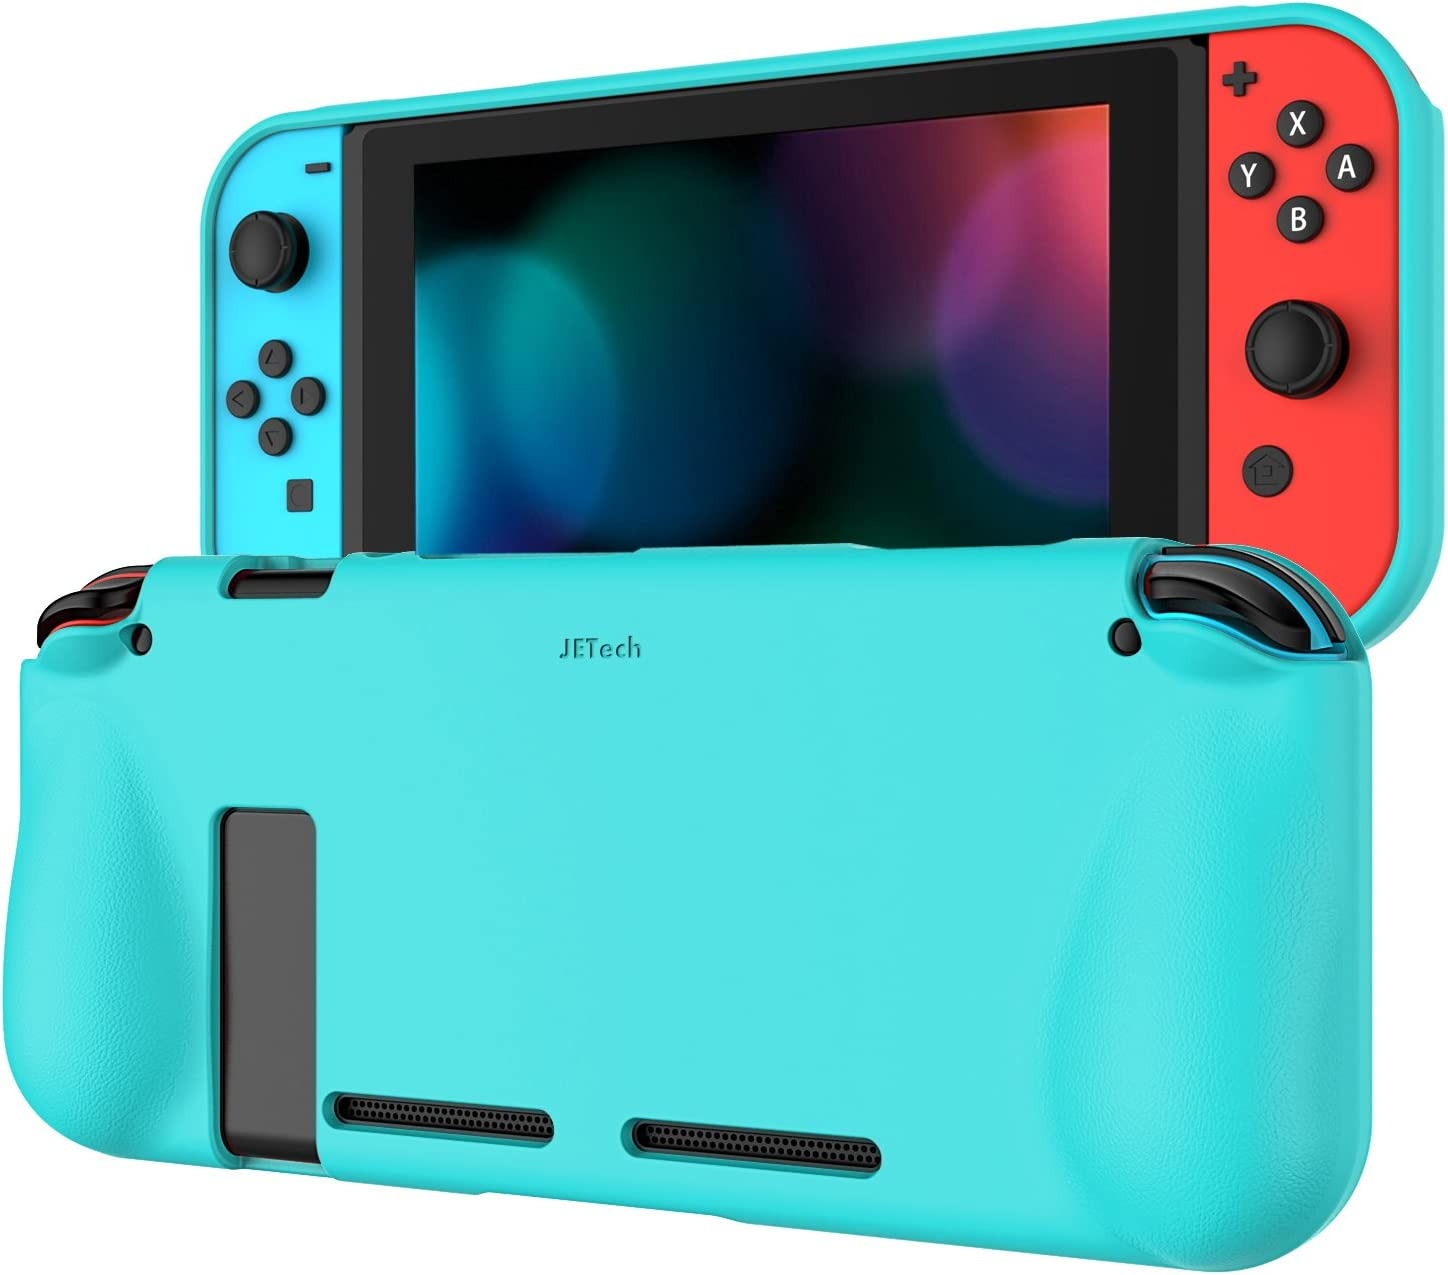 JETech Protective Case for Nintendo Switch 2017, Grip Cover with Shock-Absorption and Anti-Scratch Design (Blue)